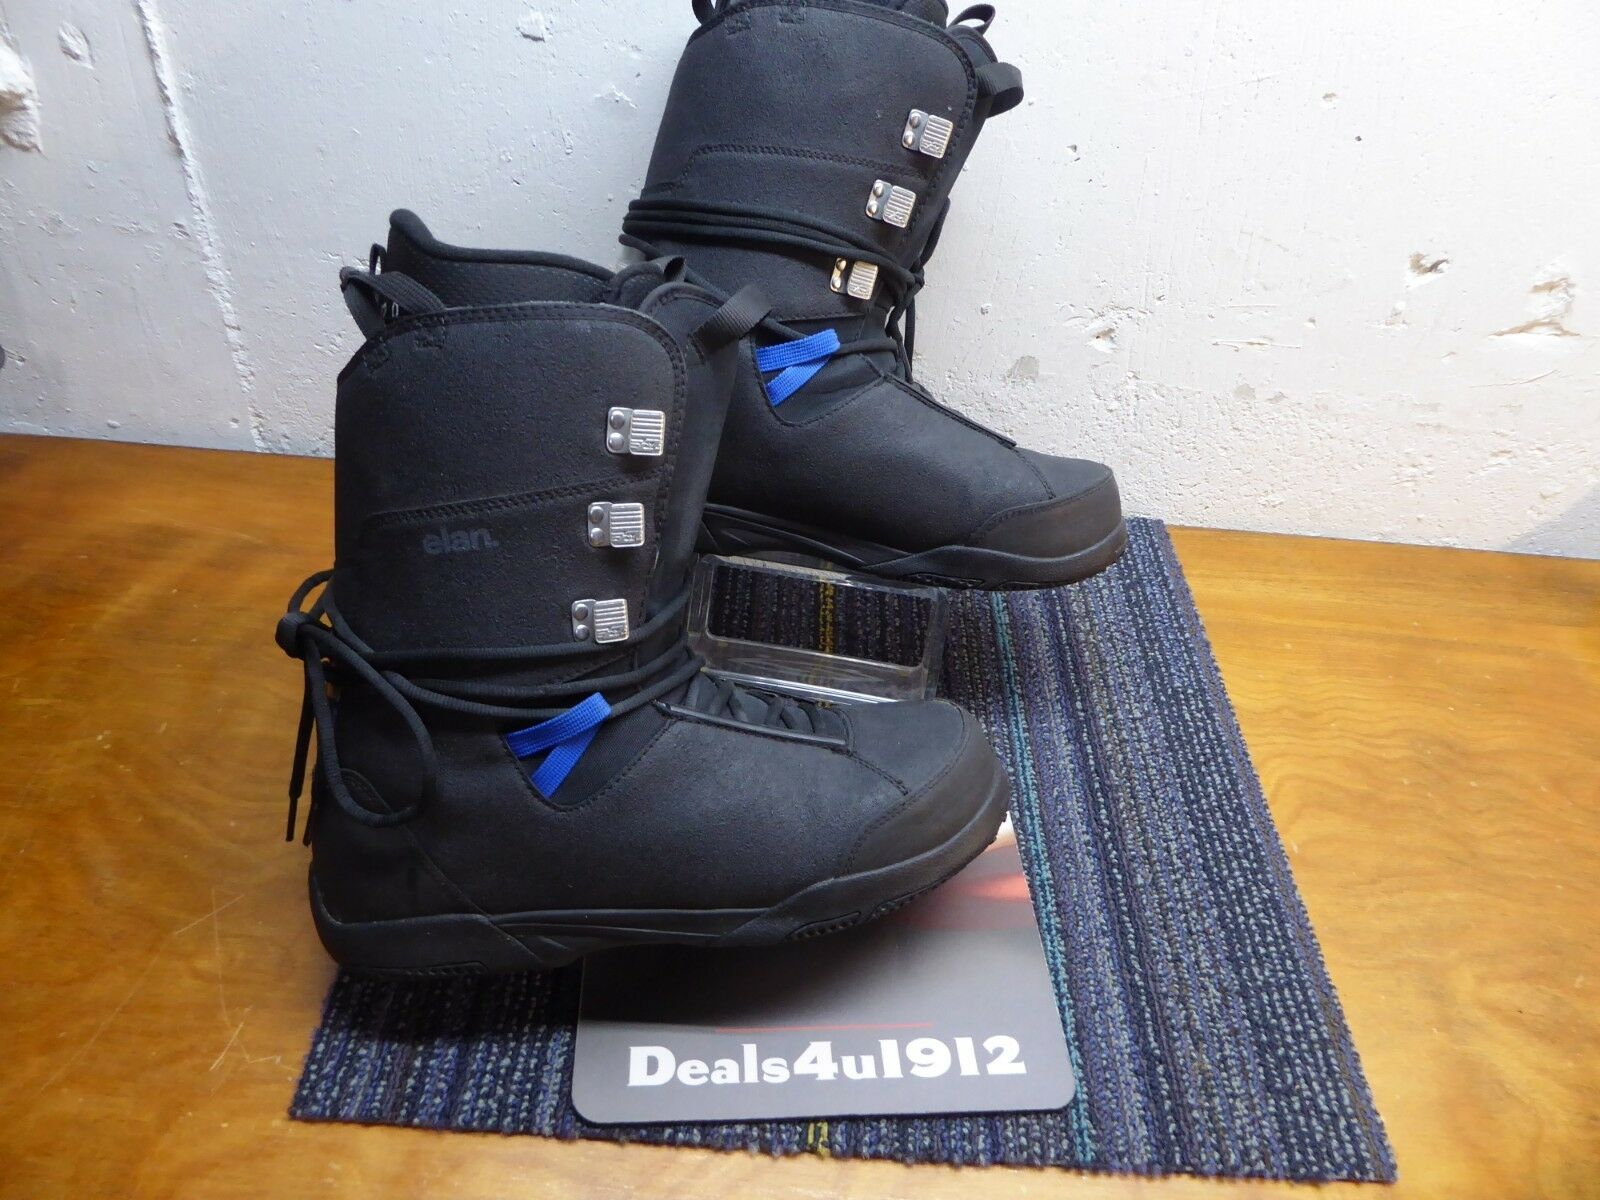 Elan Men's 12 Rental Snowboard  Boots Pull up Lace System Excellent Pre Owned  presenting all the latest high street fashion